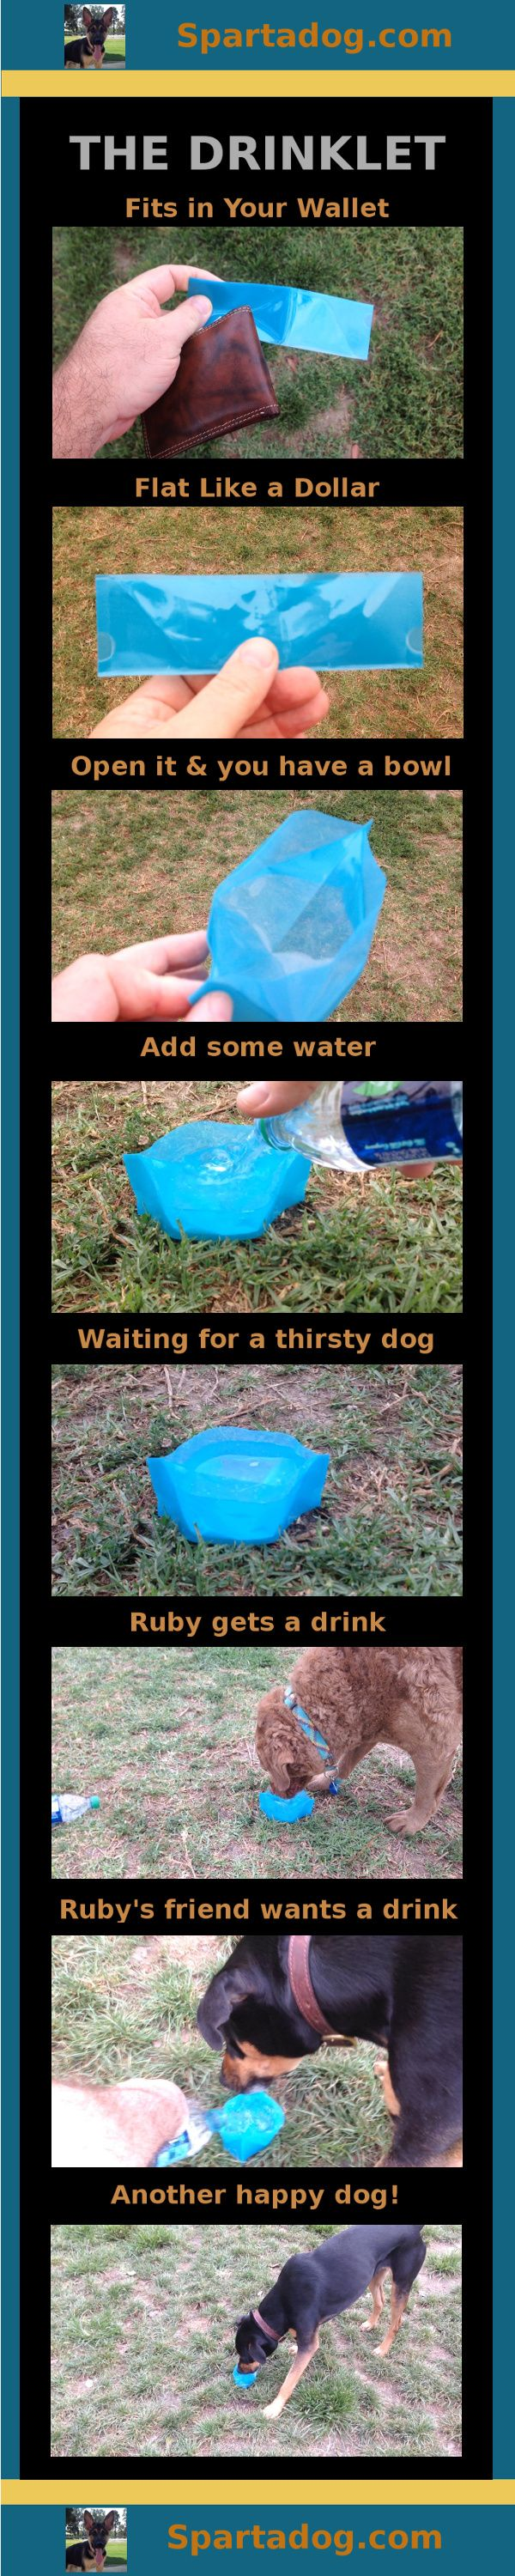 Drinklet, un recipiente para perros totalmente plano - The Drinklet, a totally…